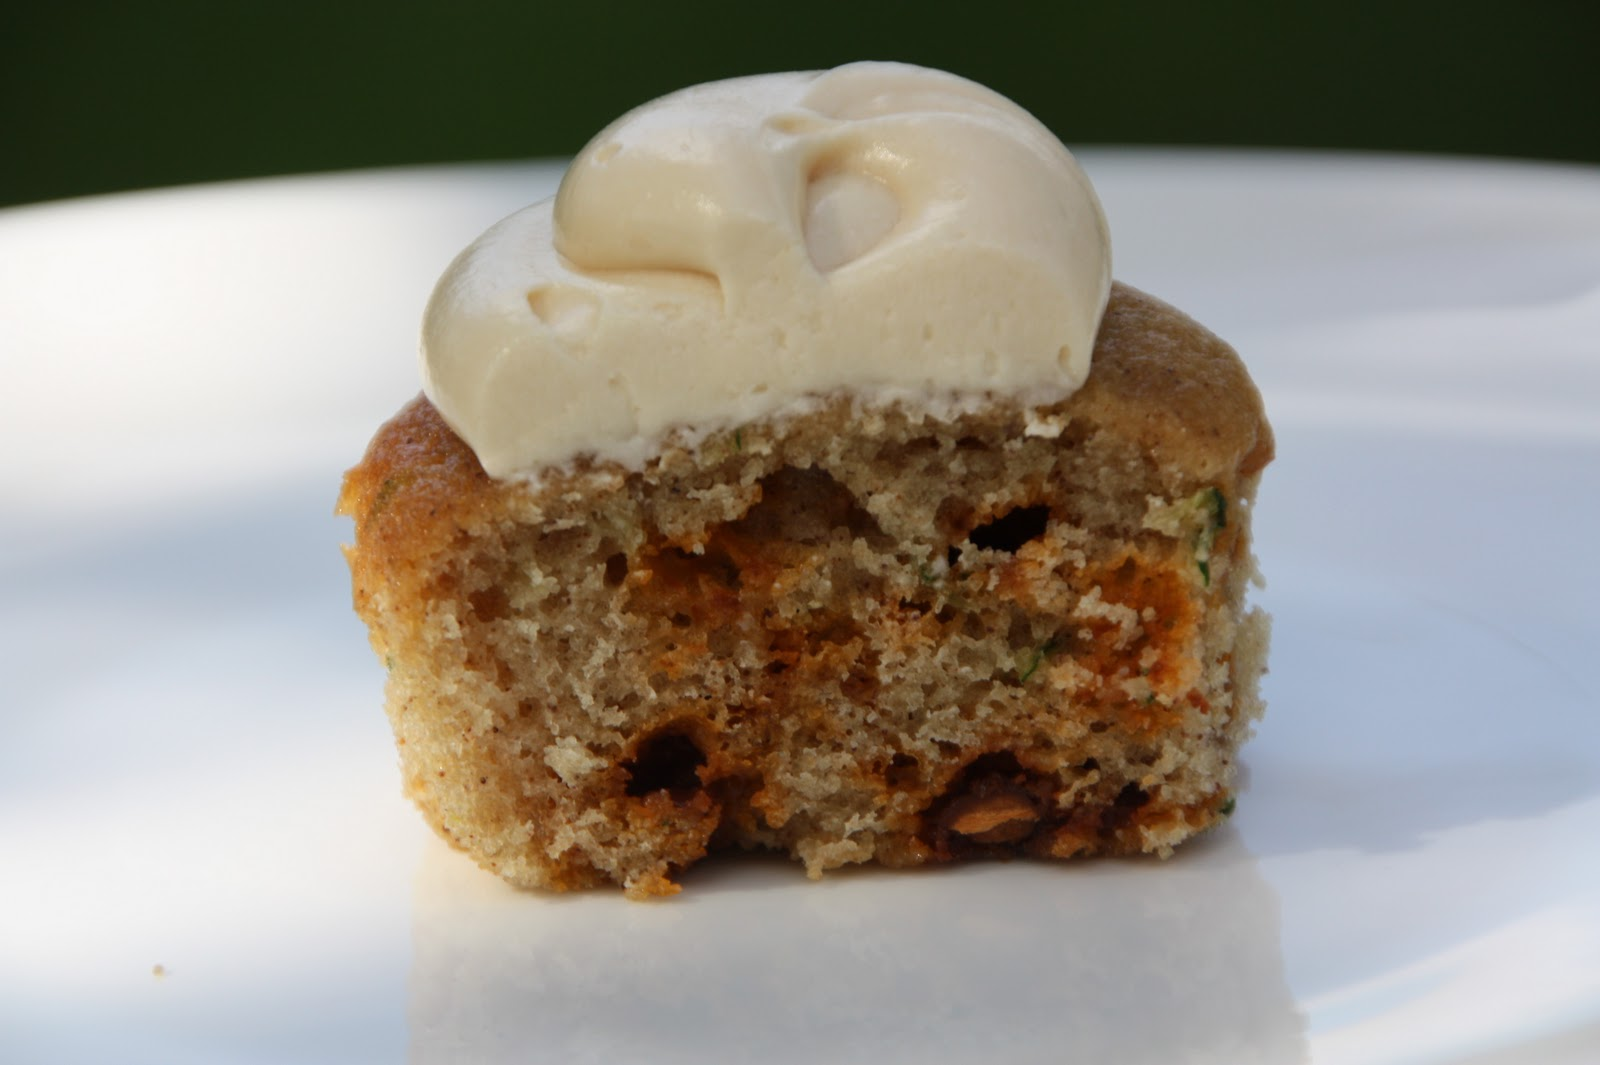 ... and Yellow Squash Cinnamon Chip Cupcakes with Caramel Frosting